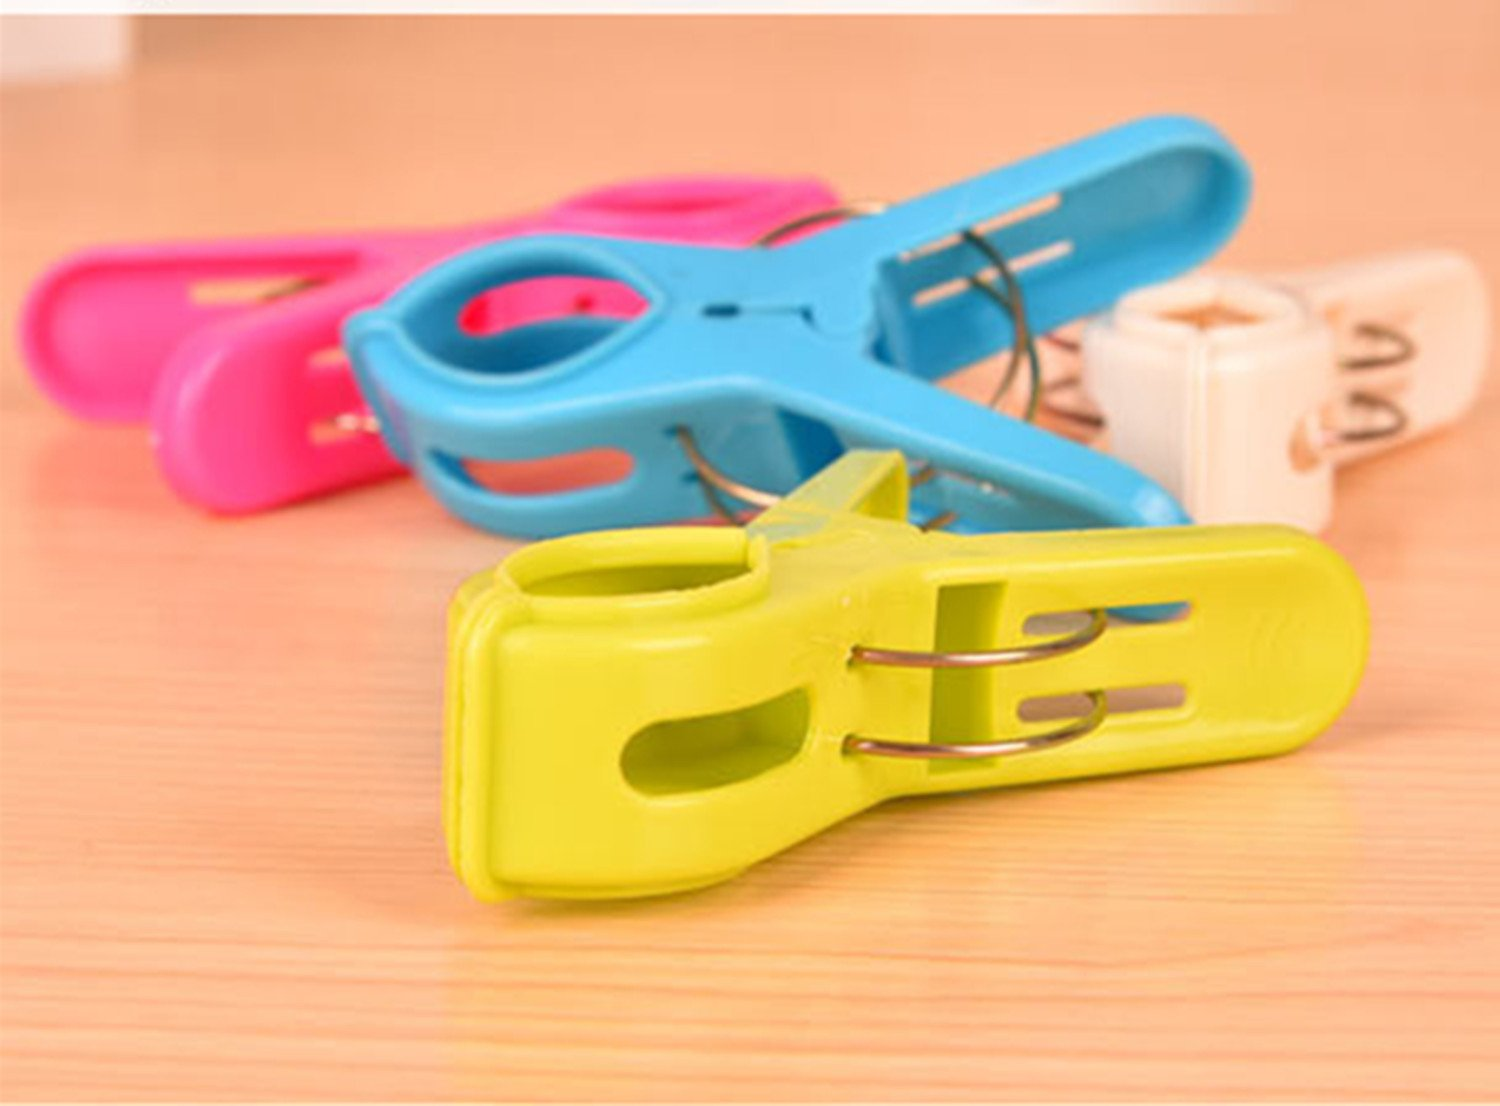 XinTan Tiger Finger Clips 50 Pcs Plastic Hangers Finger Clips Plastic Hangers Clips Baby Hanger Clips Use with Clothes Hangers